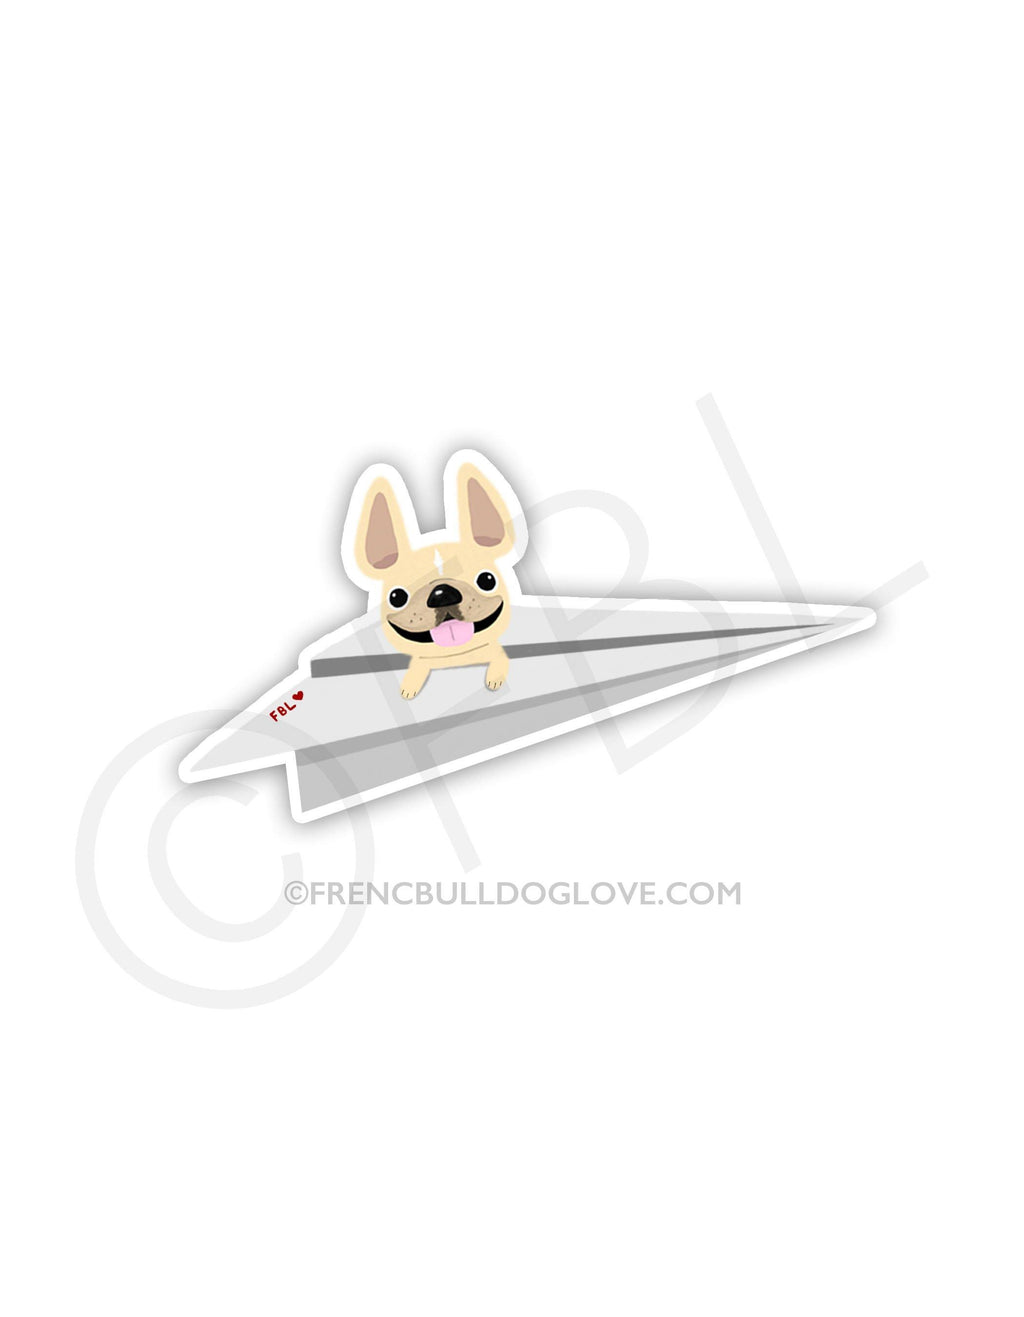 #100DAYPROJECT 51/100 - PAPER PLANE VINYL FRENCH BULLDOG STICKER